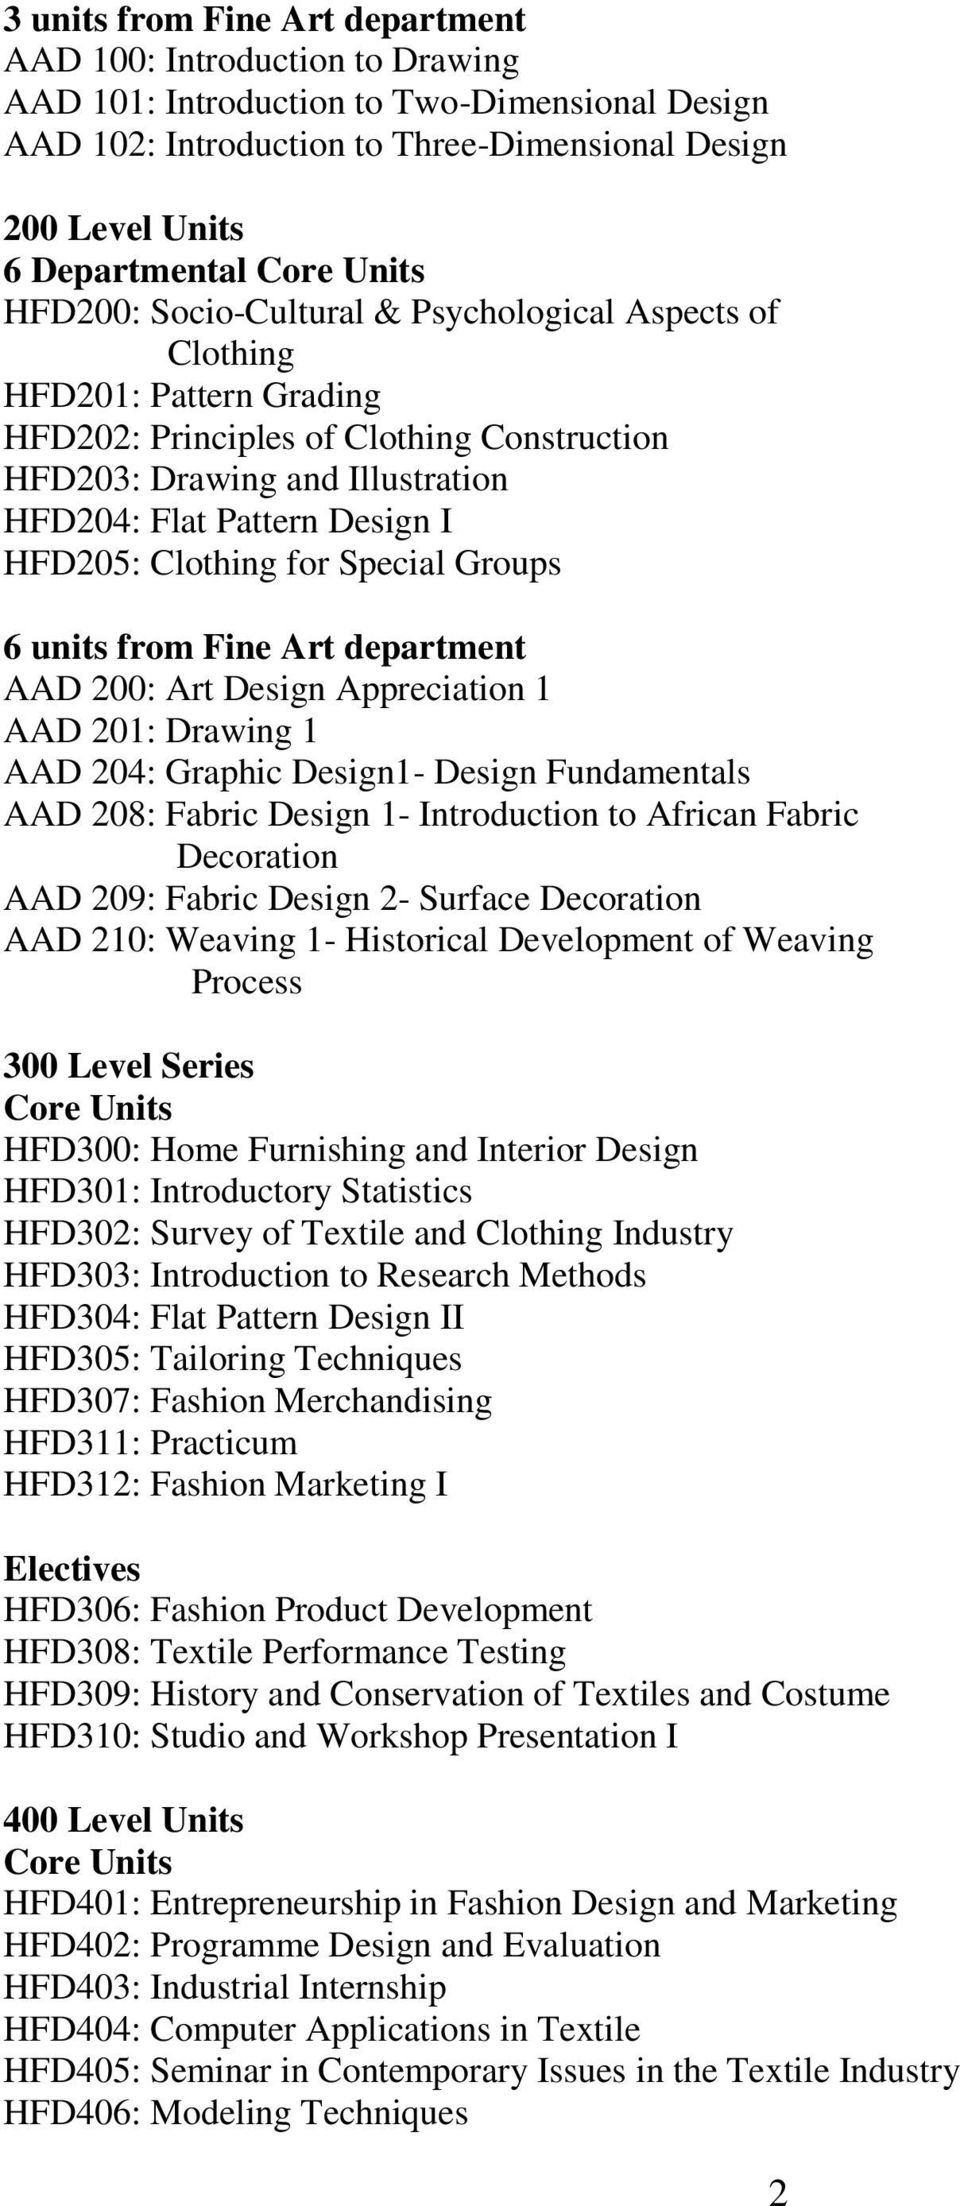 Clothing for Special Groups 6 units from Fine Art department AAD 200: Art Design Appreciation 1 AAD 201: Drawing 1 AAD 204: Graphic Design1- Design Fundamentals AAD 208: Fabric Design 1- Introduction